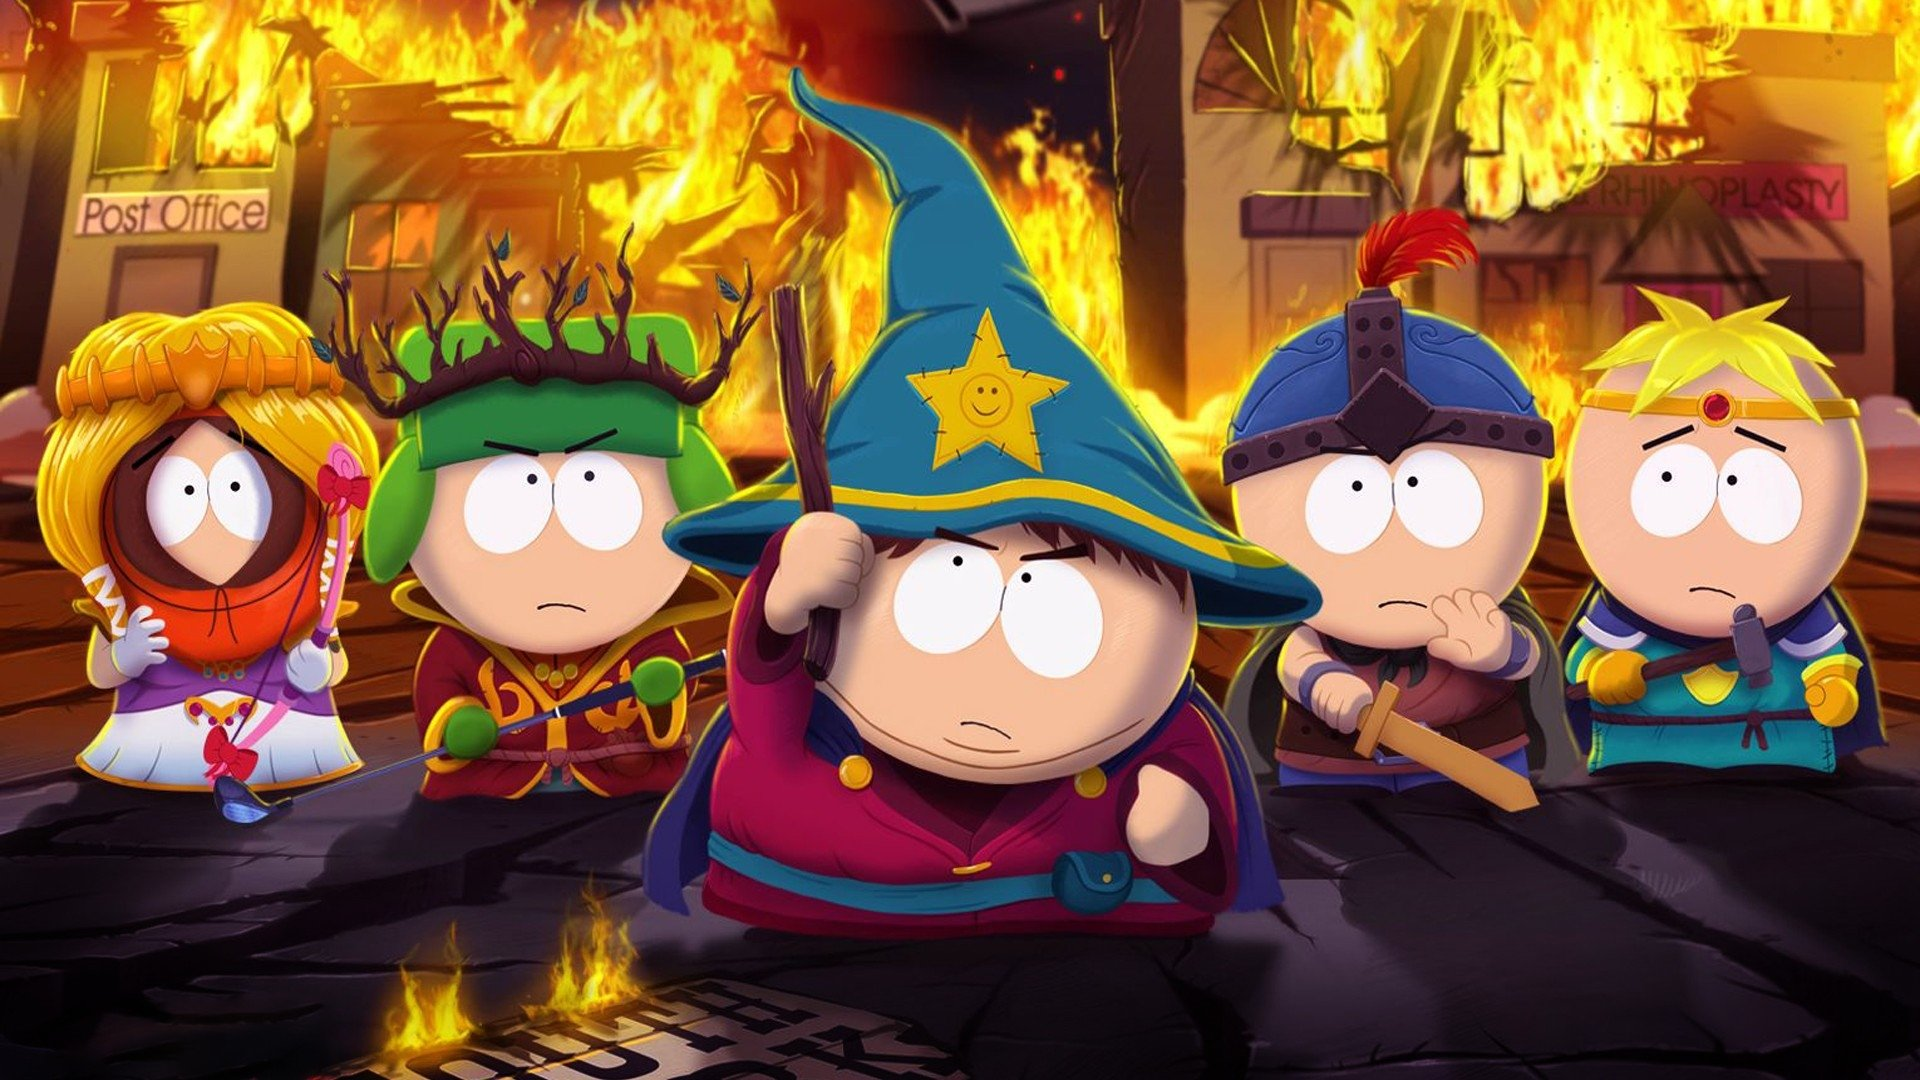 south park wallpaper  6 South Park: The Stick of Truth HD Wallpapers | Background Images ...